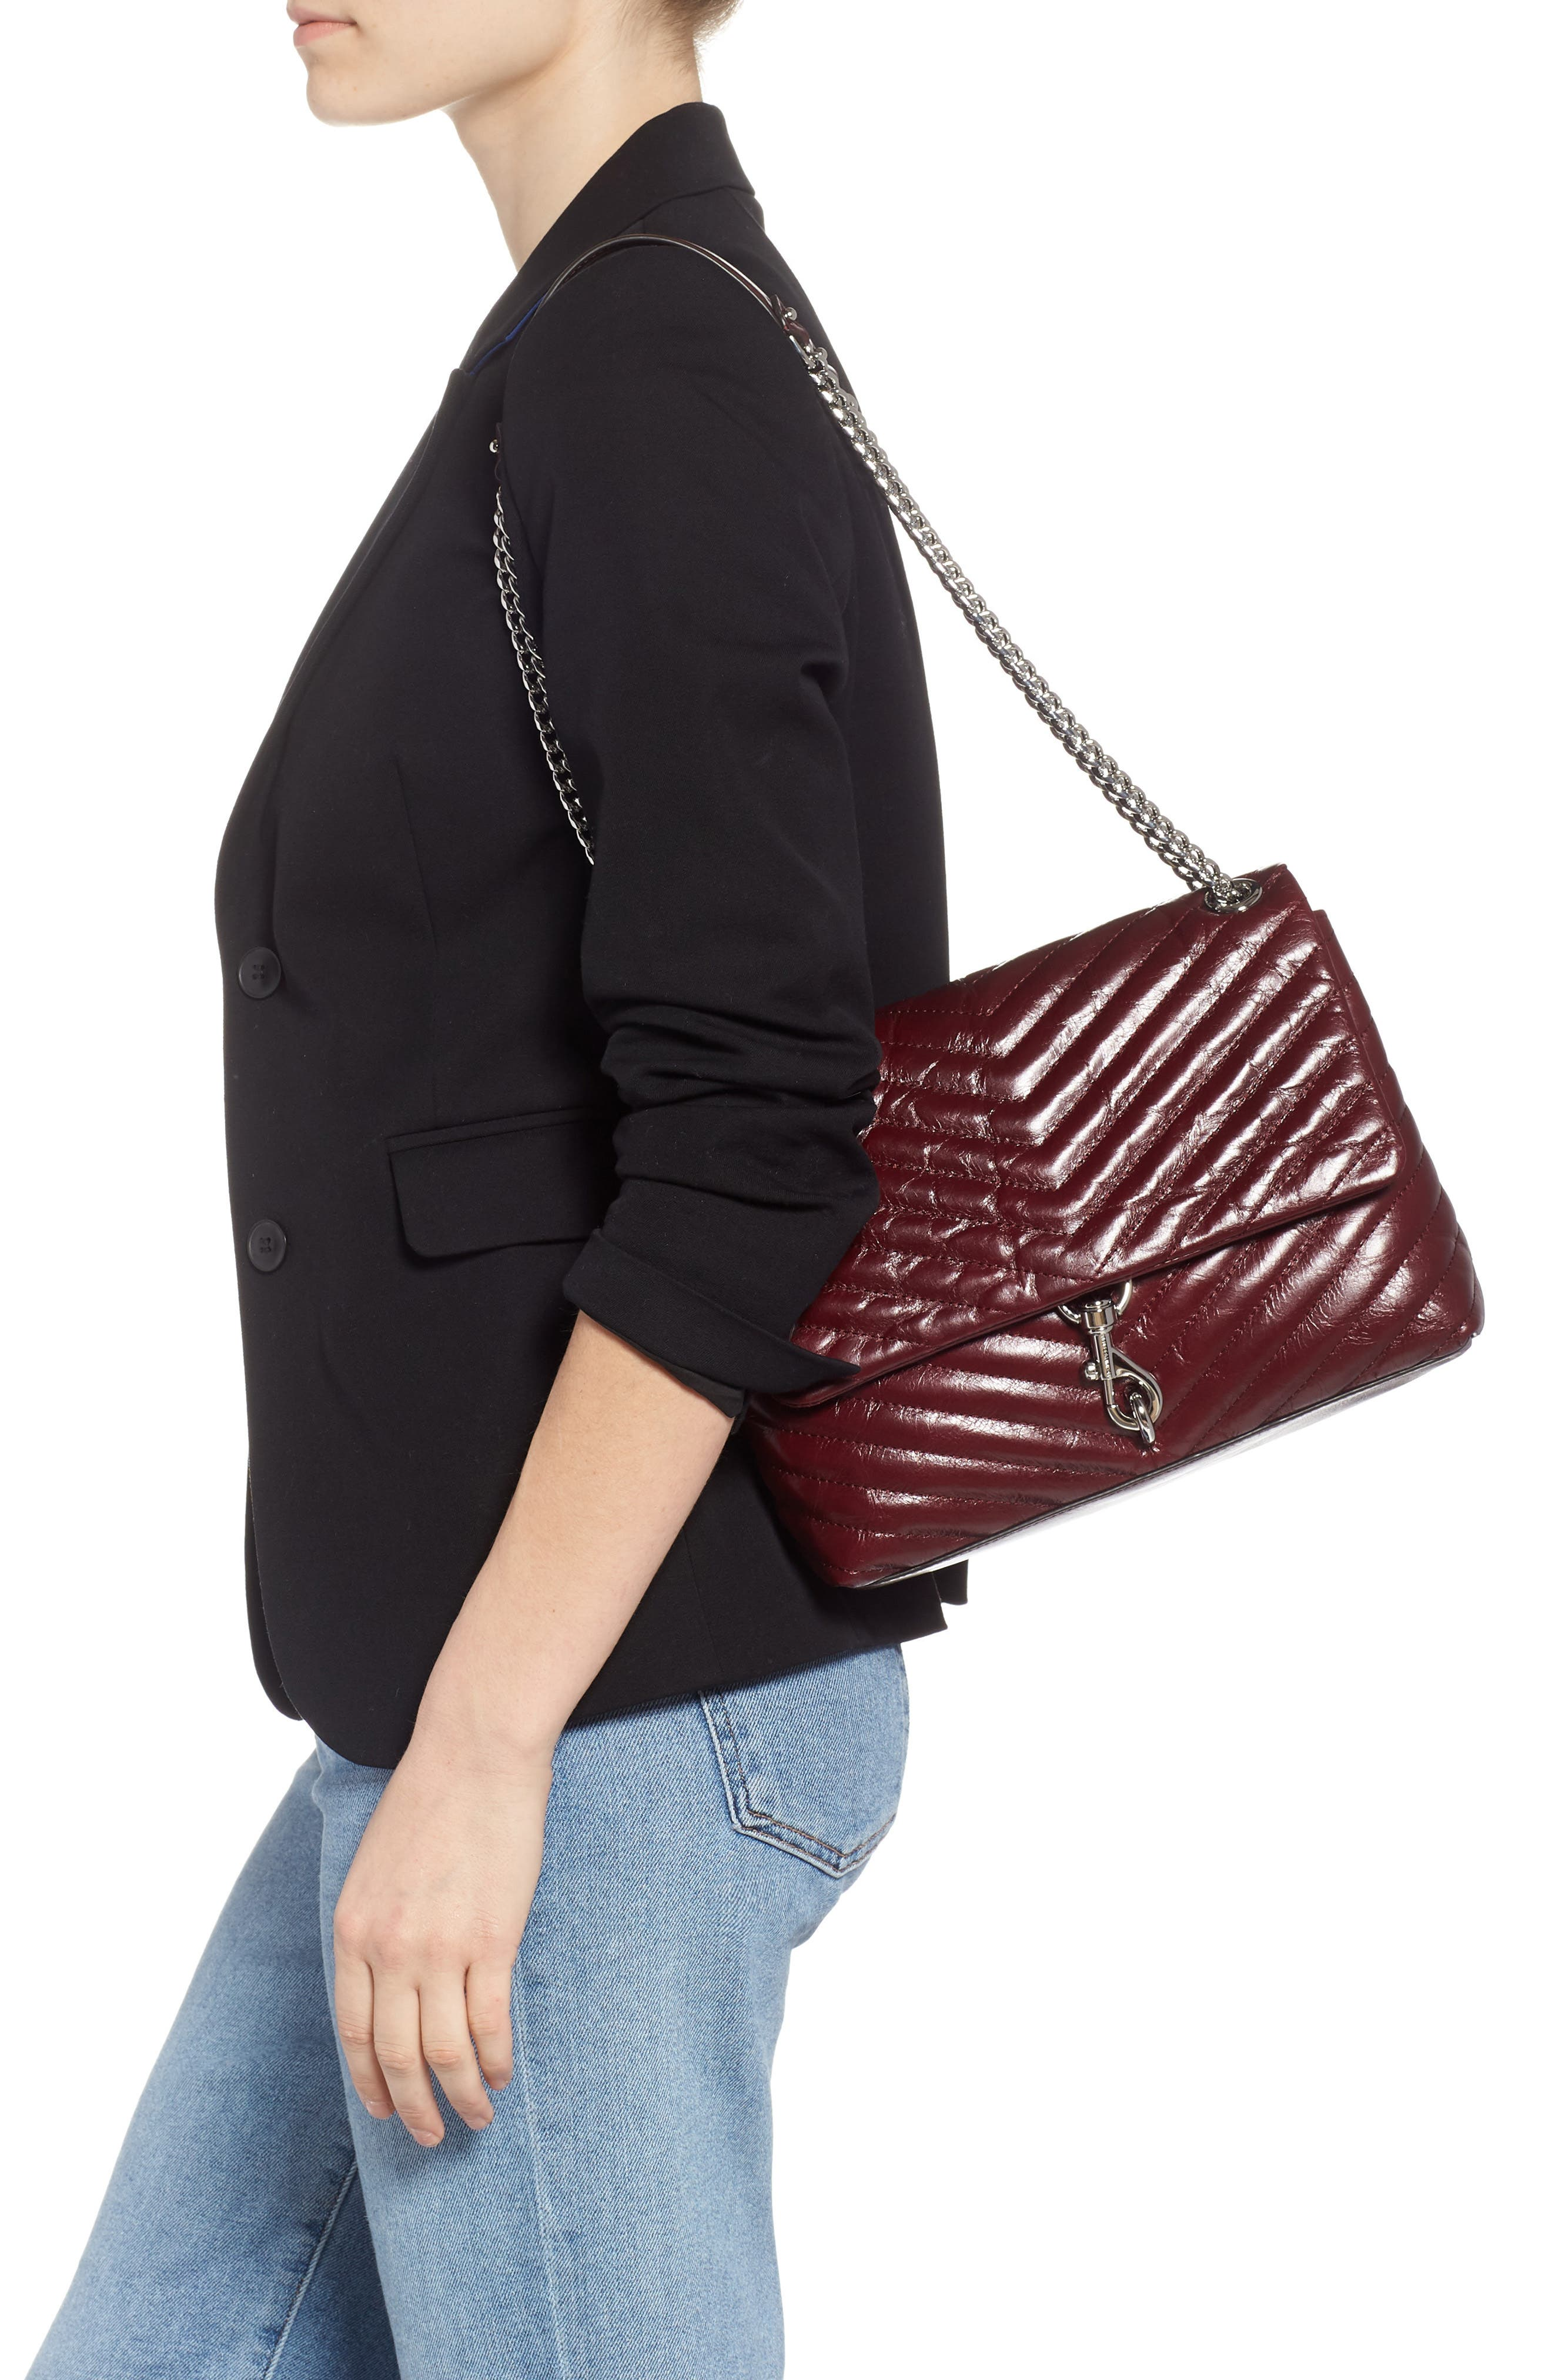 Edie Flap Front Leather Shoulder Bag,                             Alternate thumbnail 2, color,                             BORDEAUX